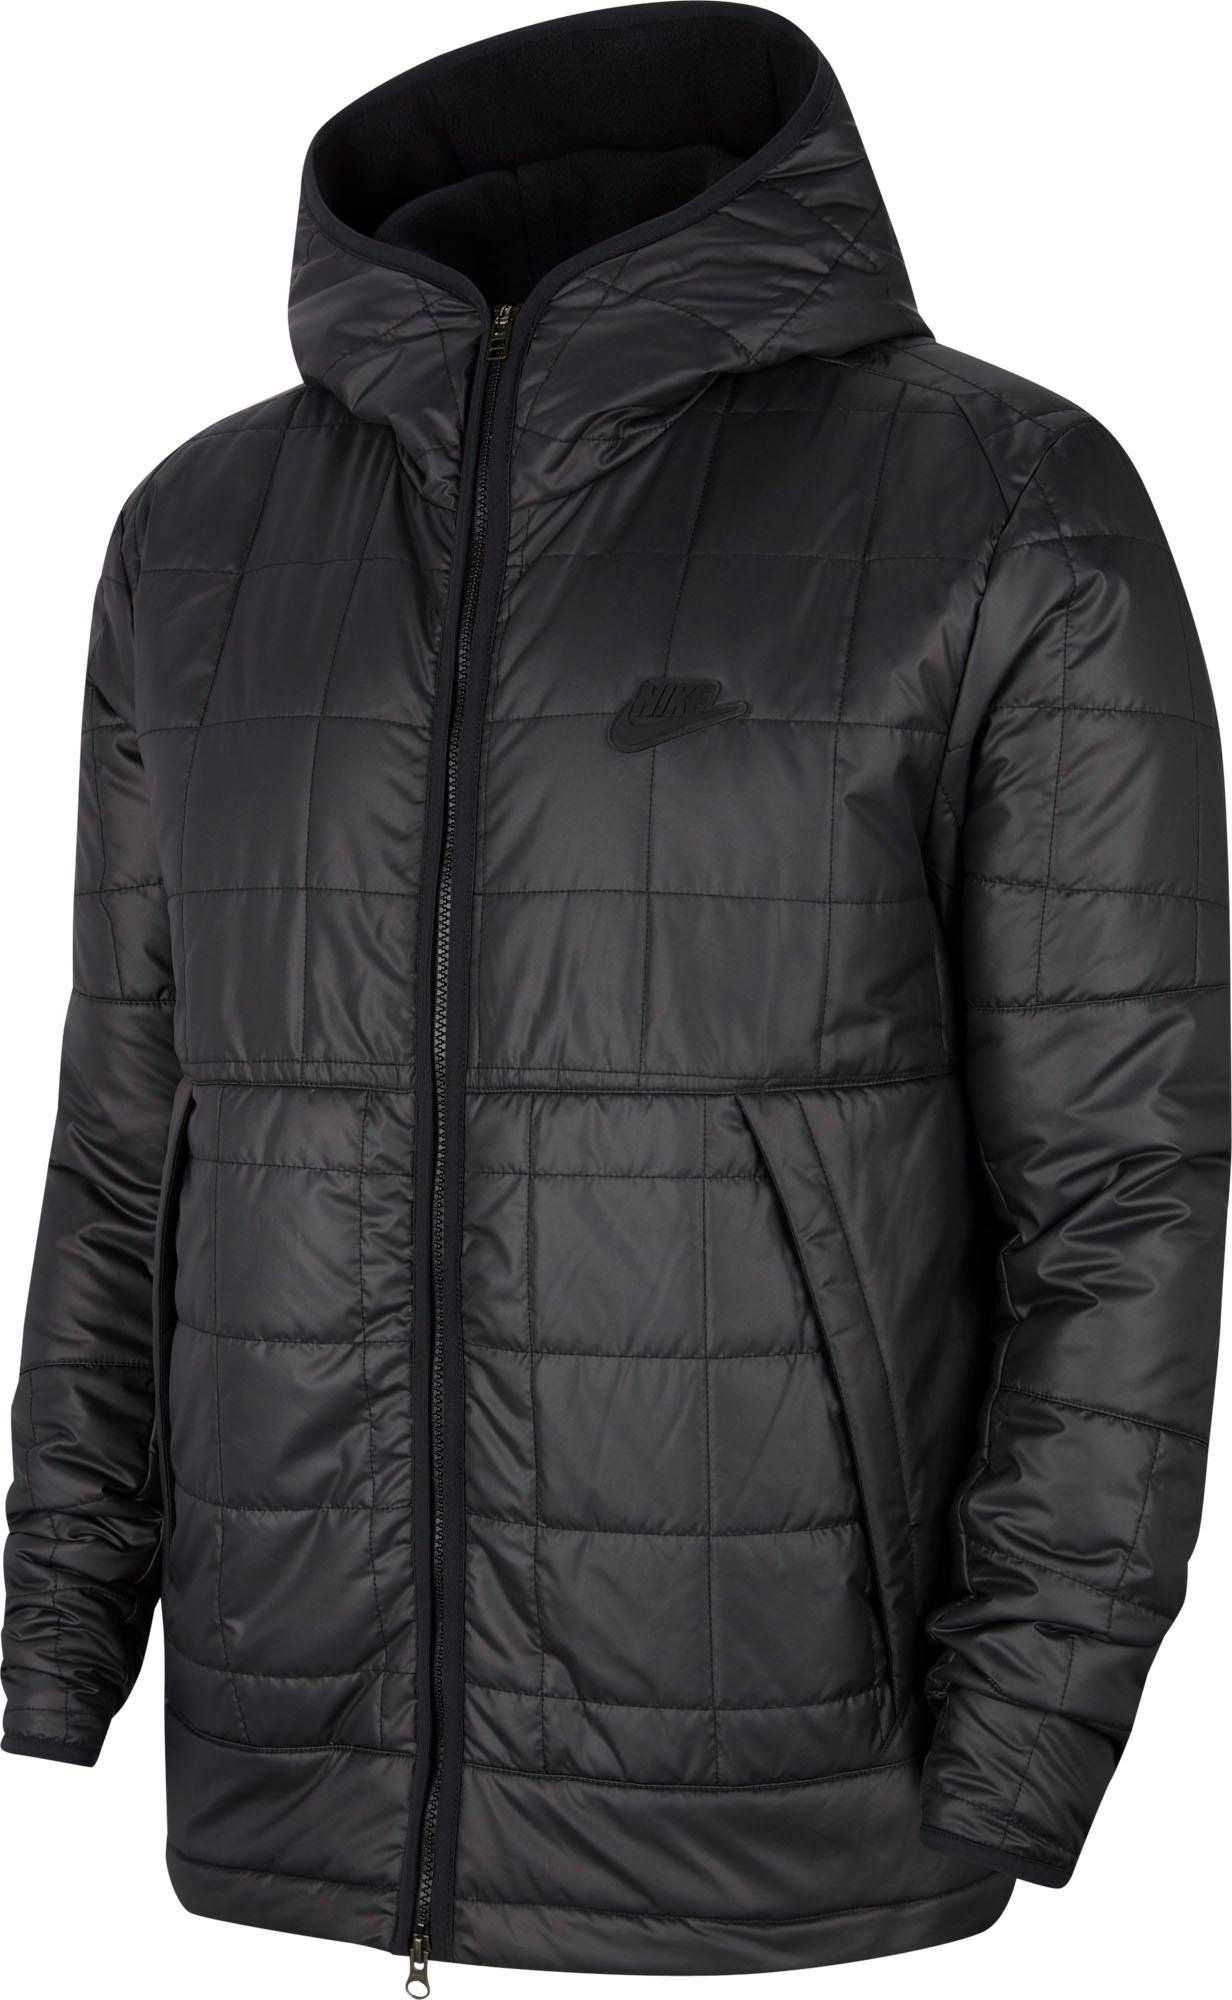 Nike winterjack »Men's Synthetic Fill Fleece Jacket« bestellen: 30 dagen bedenktijd